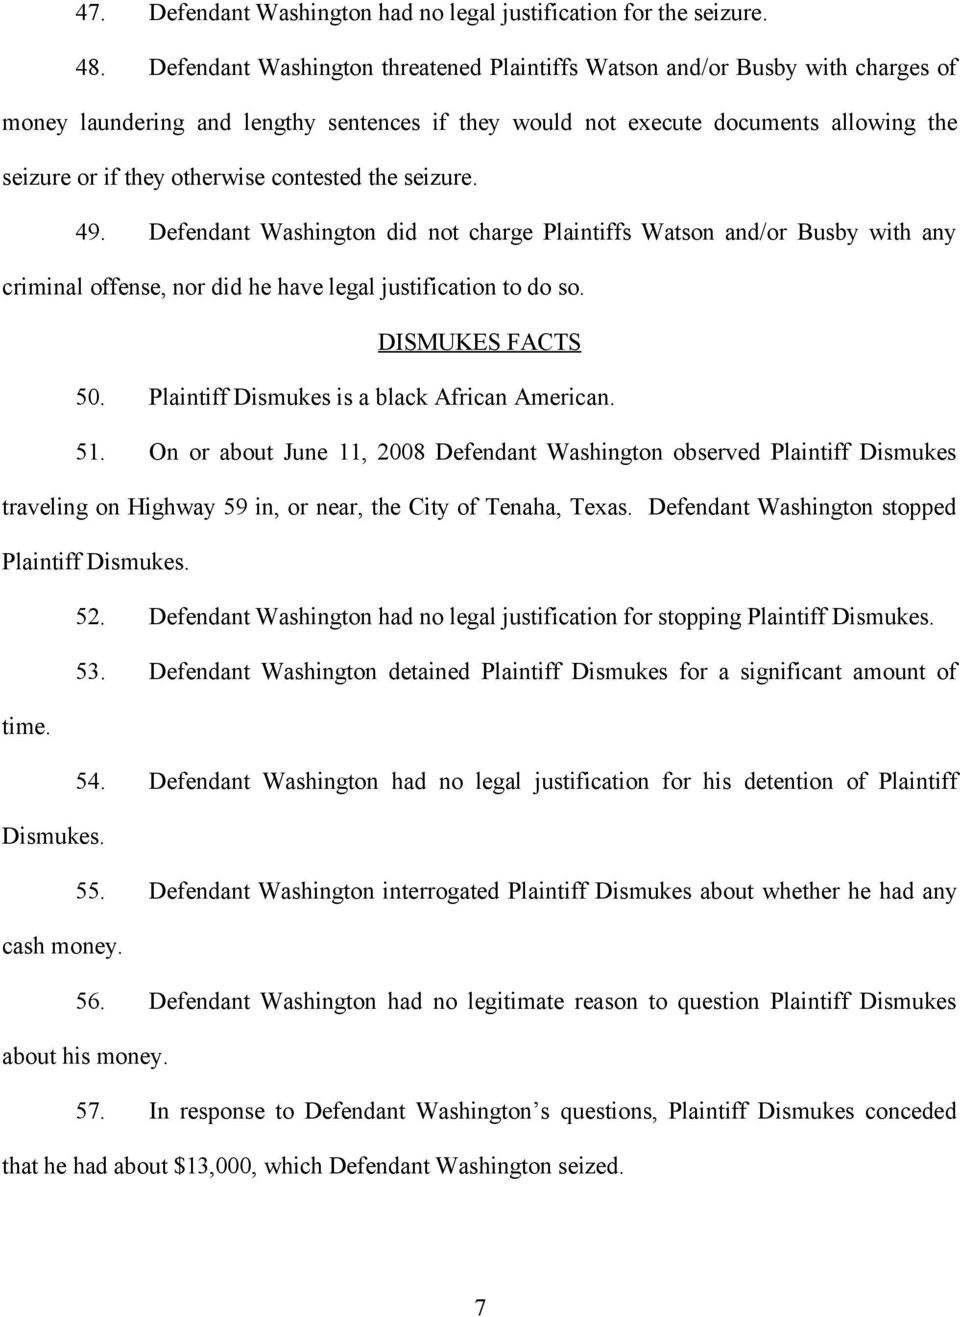 contested the seizure. 49. Defendant Washington did not charge Plaintiffs Watson and/or Busby with any criminal offense, nor did he have legal justification to do so. DISMUKES FACTS 50.